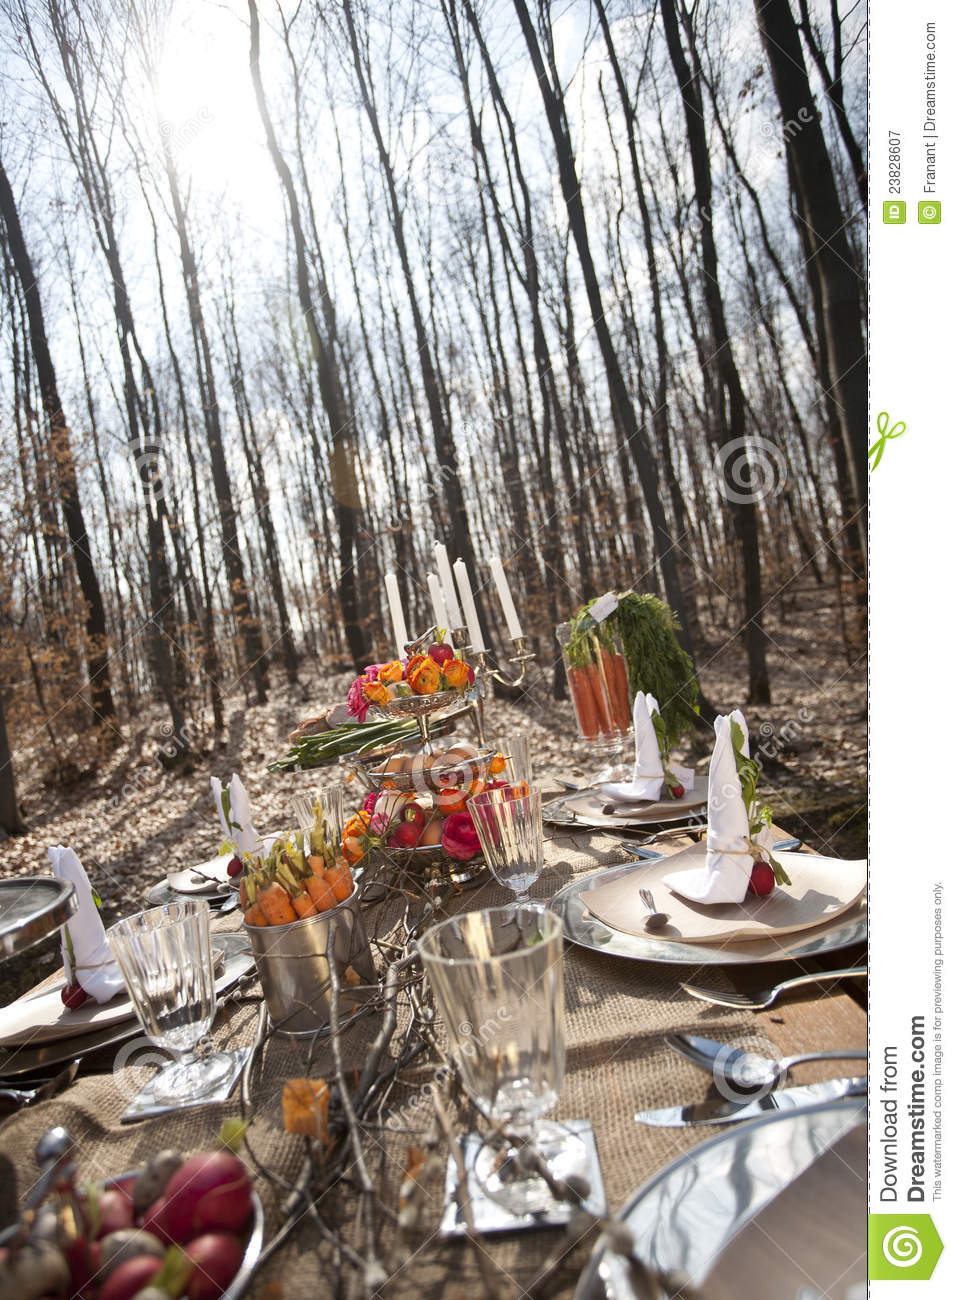 Table With Food In Forest Stock Image Image Of Garden